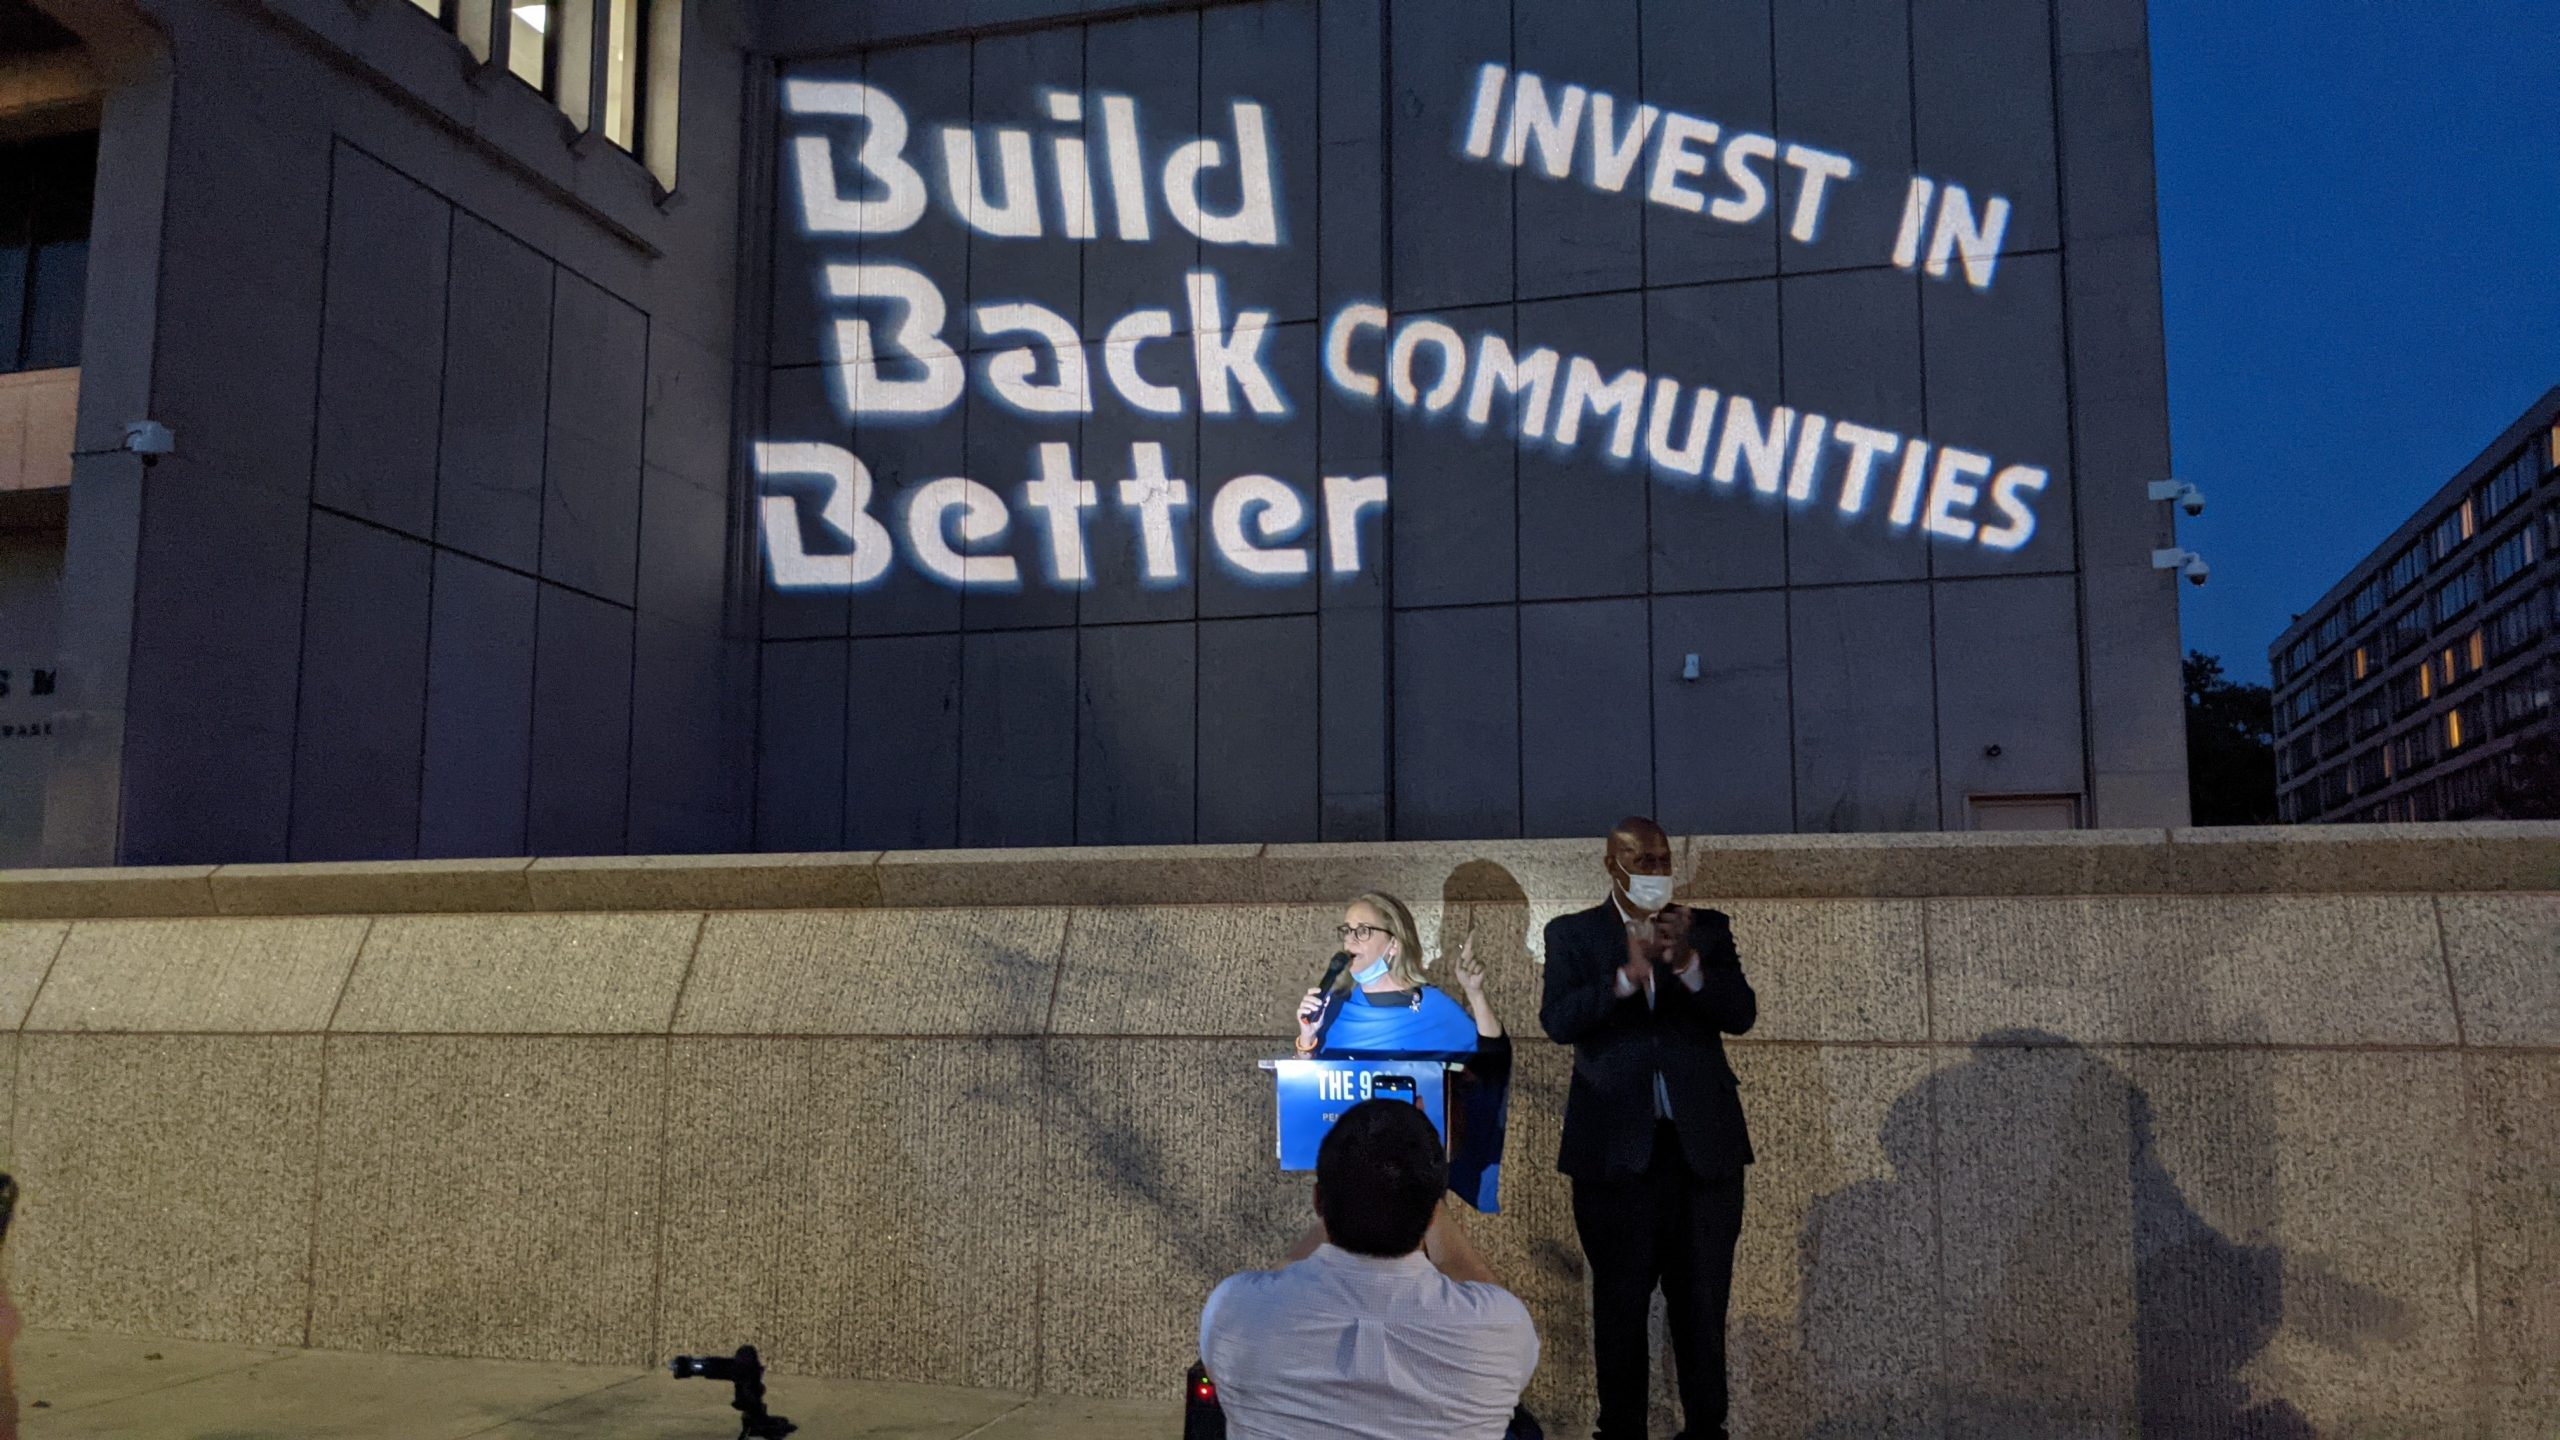 Rep. Madeleine Dean and Rep. Dwight Evans speak at Build Back Better event in front of the U.S. Mint in Philadelphia..